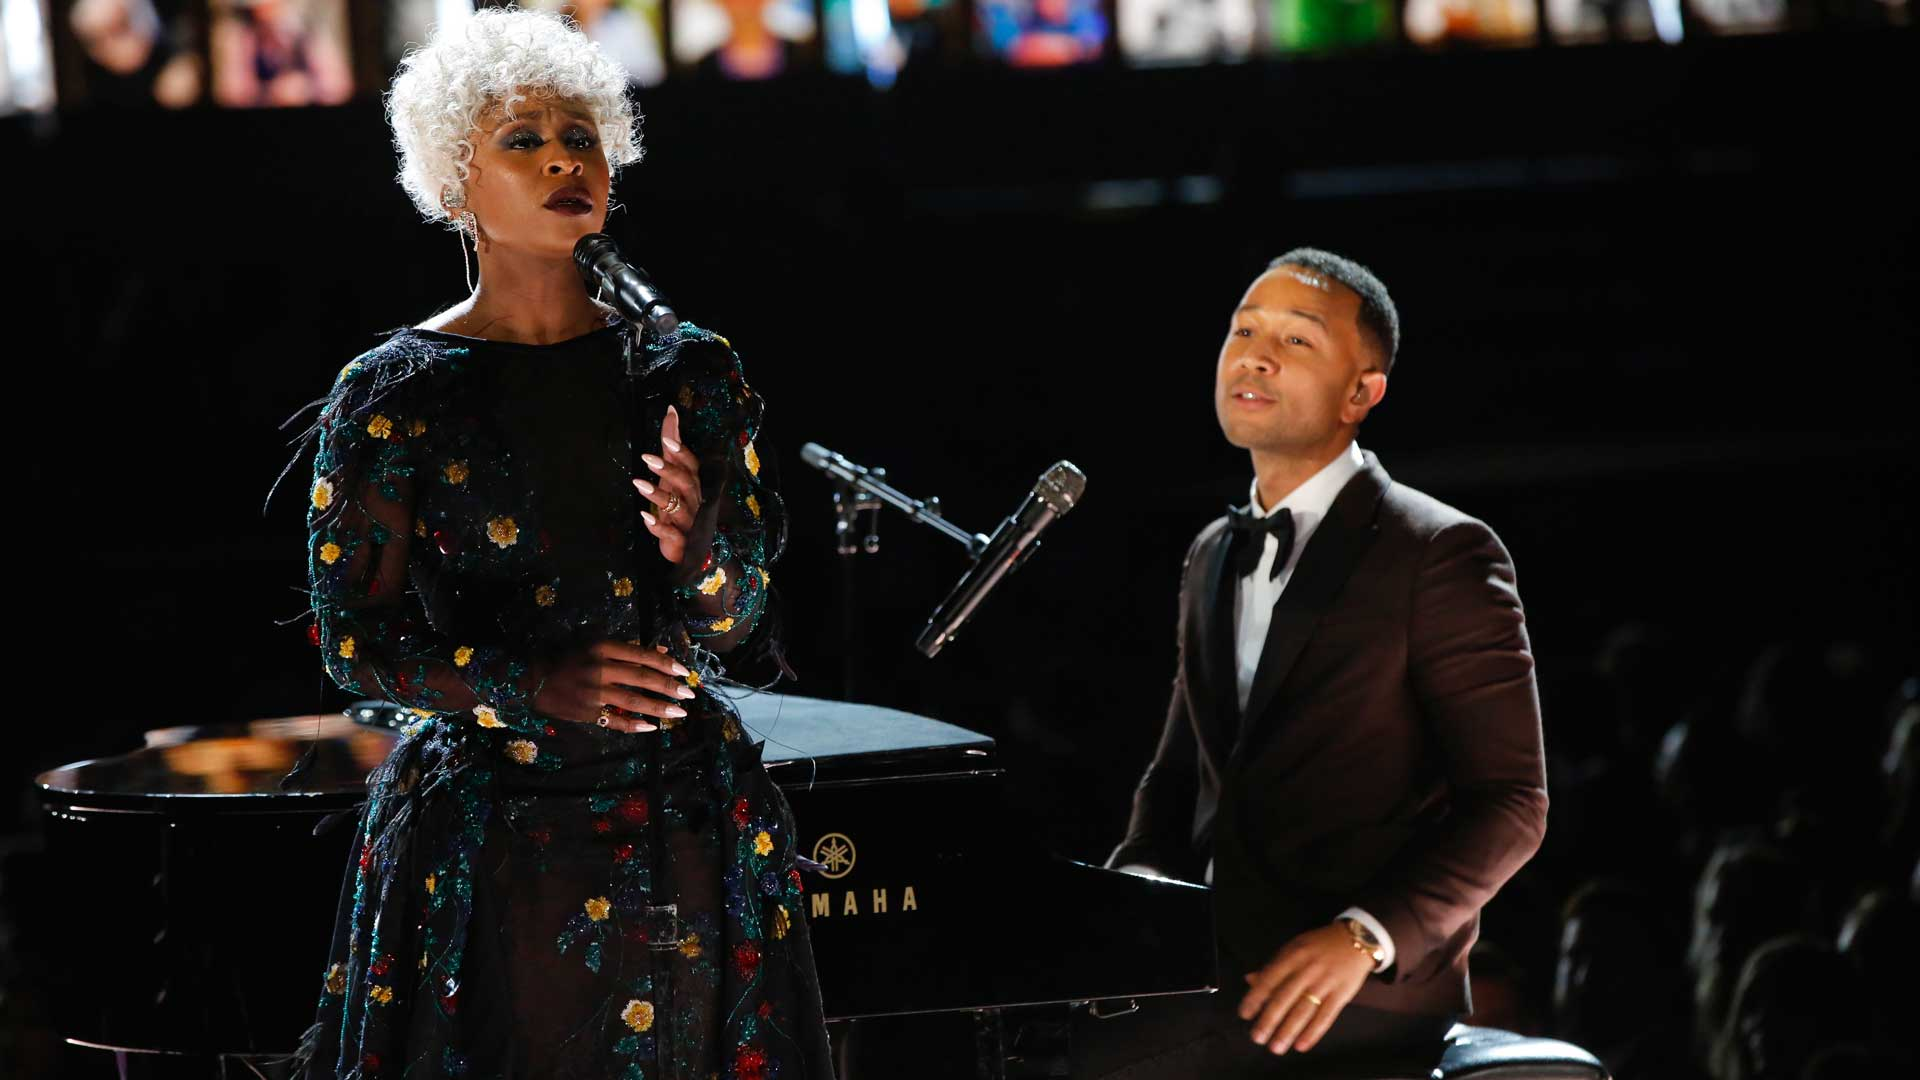 John Legend and Cynthia Erivo perform